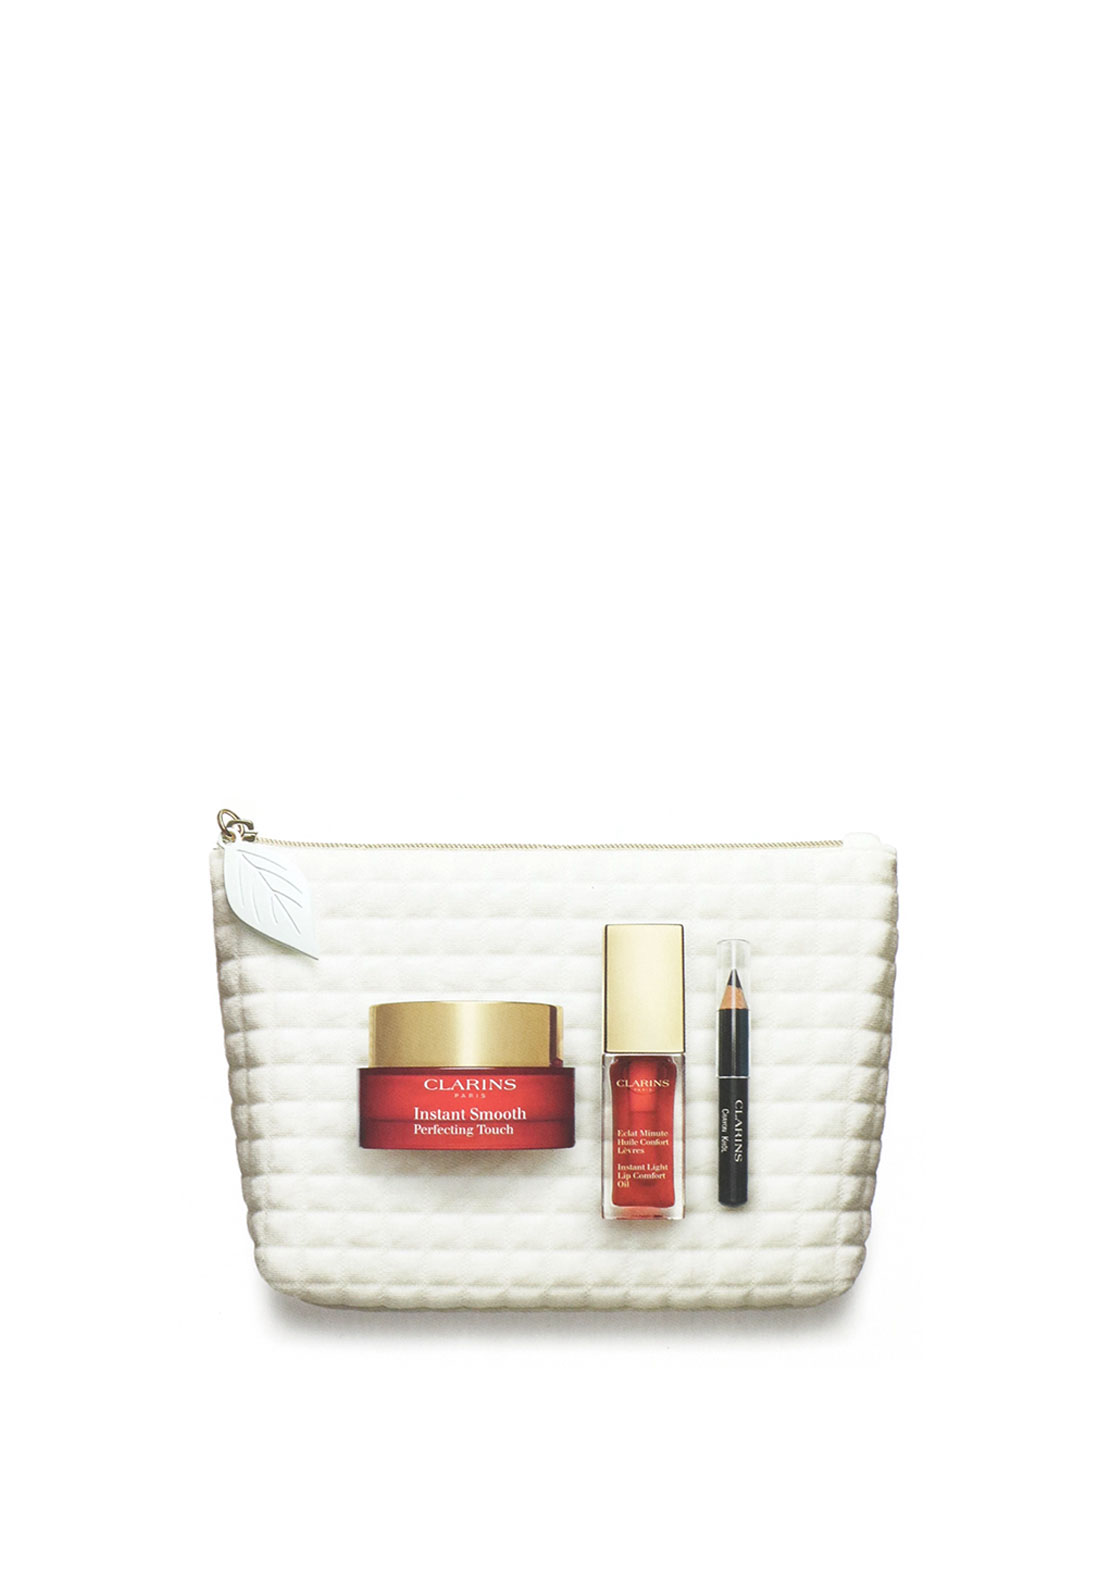 Clarins Christmas 'Instant beauty-makers' Gift Set